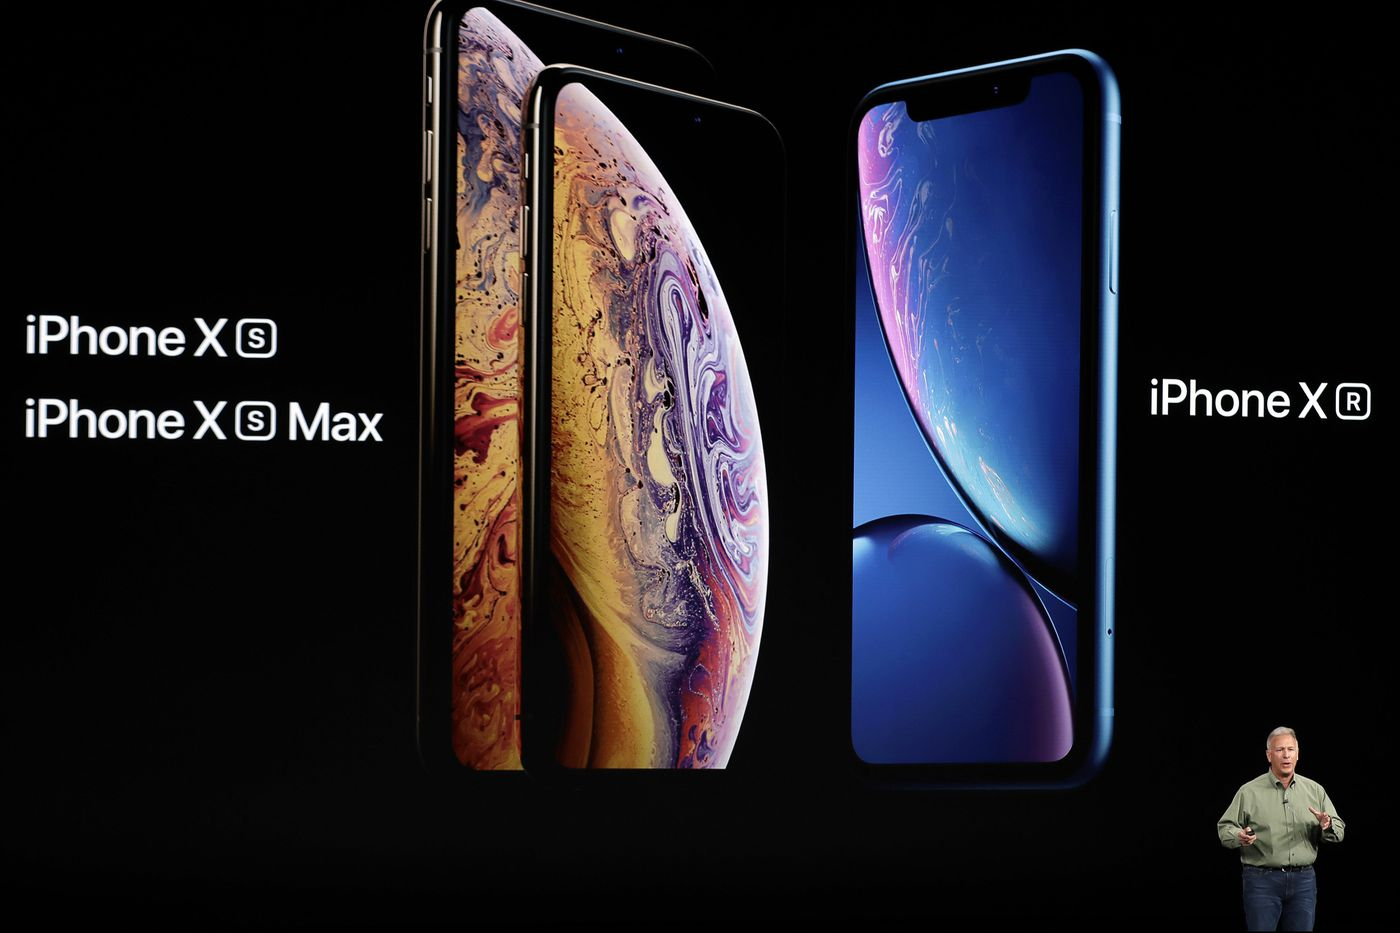 IPhone XS and iPhone XS Max are already selling out — Surprise